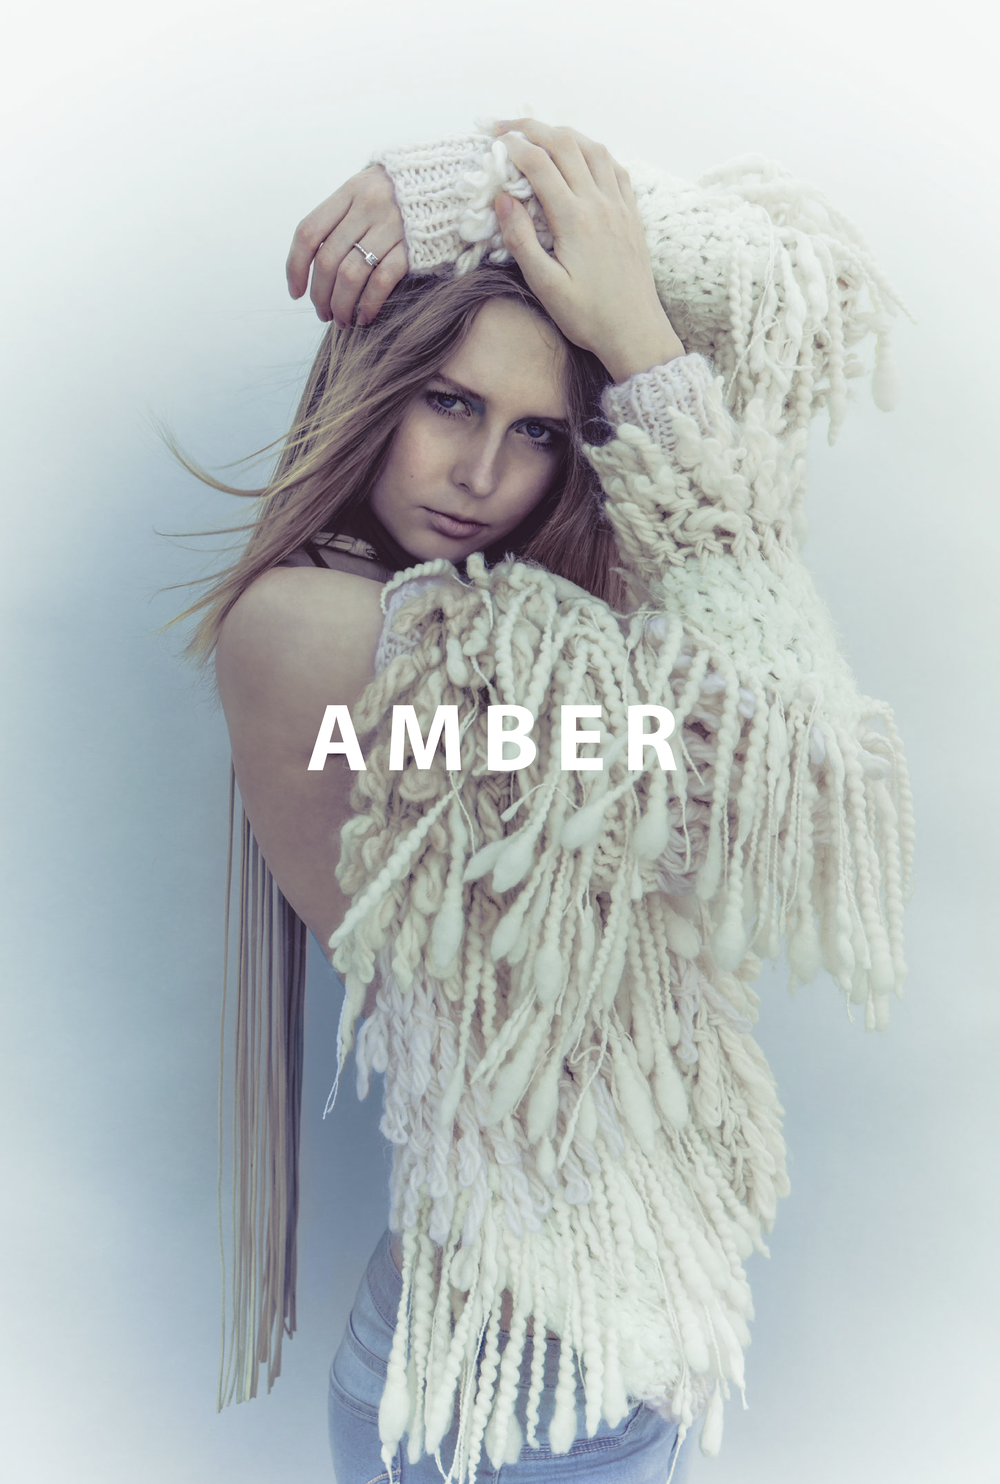 amber-coverphoto-02.png